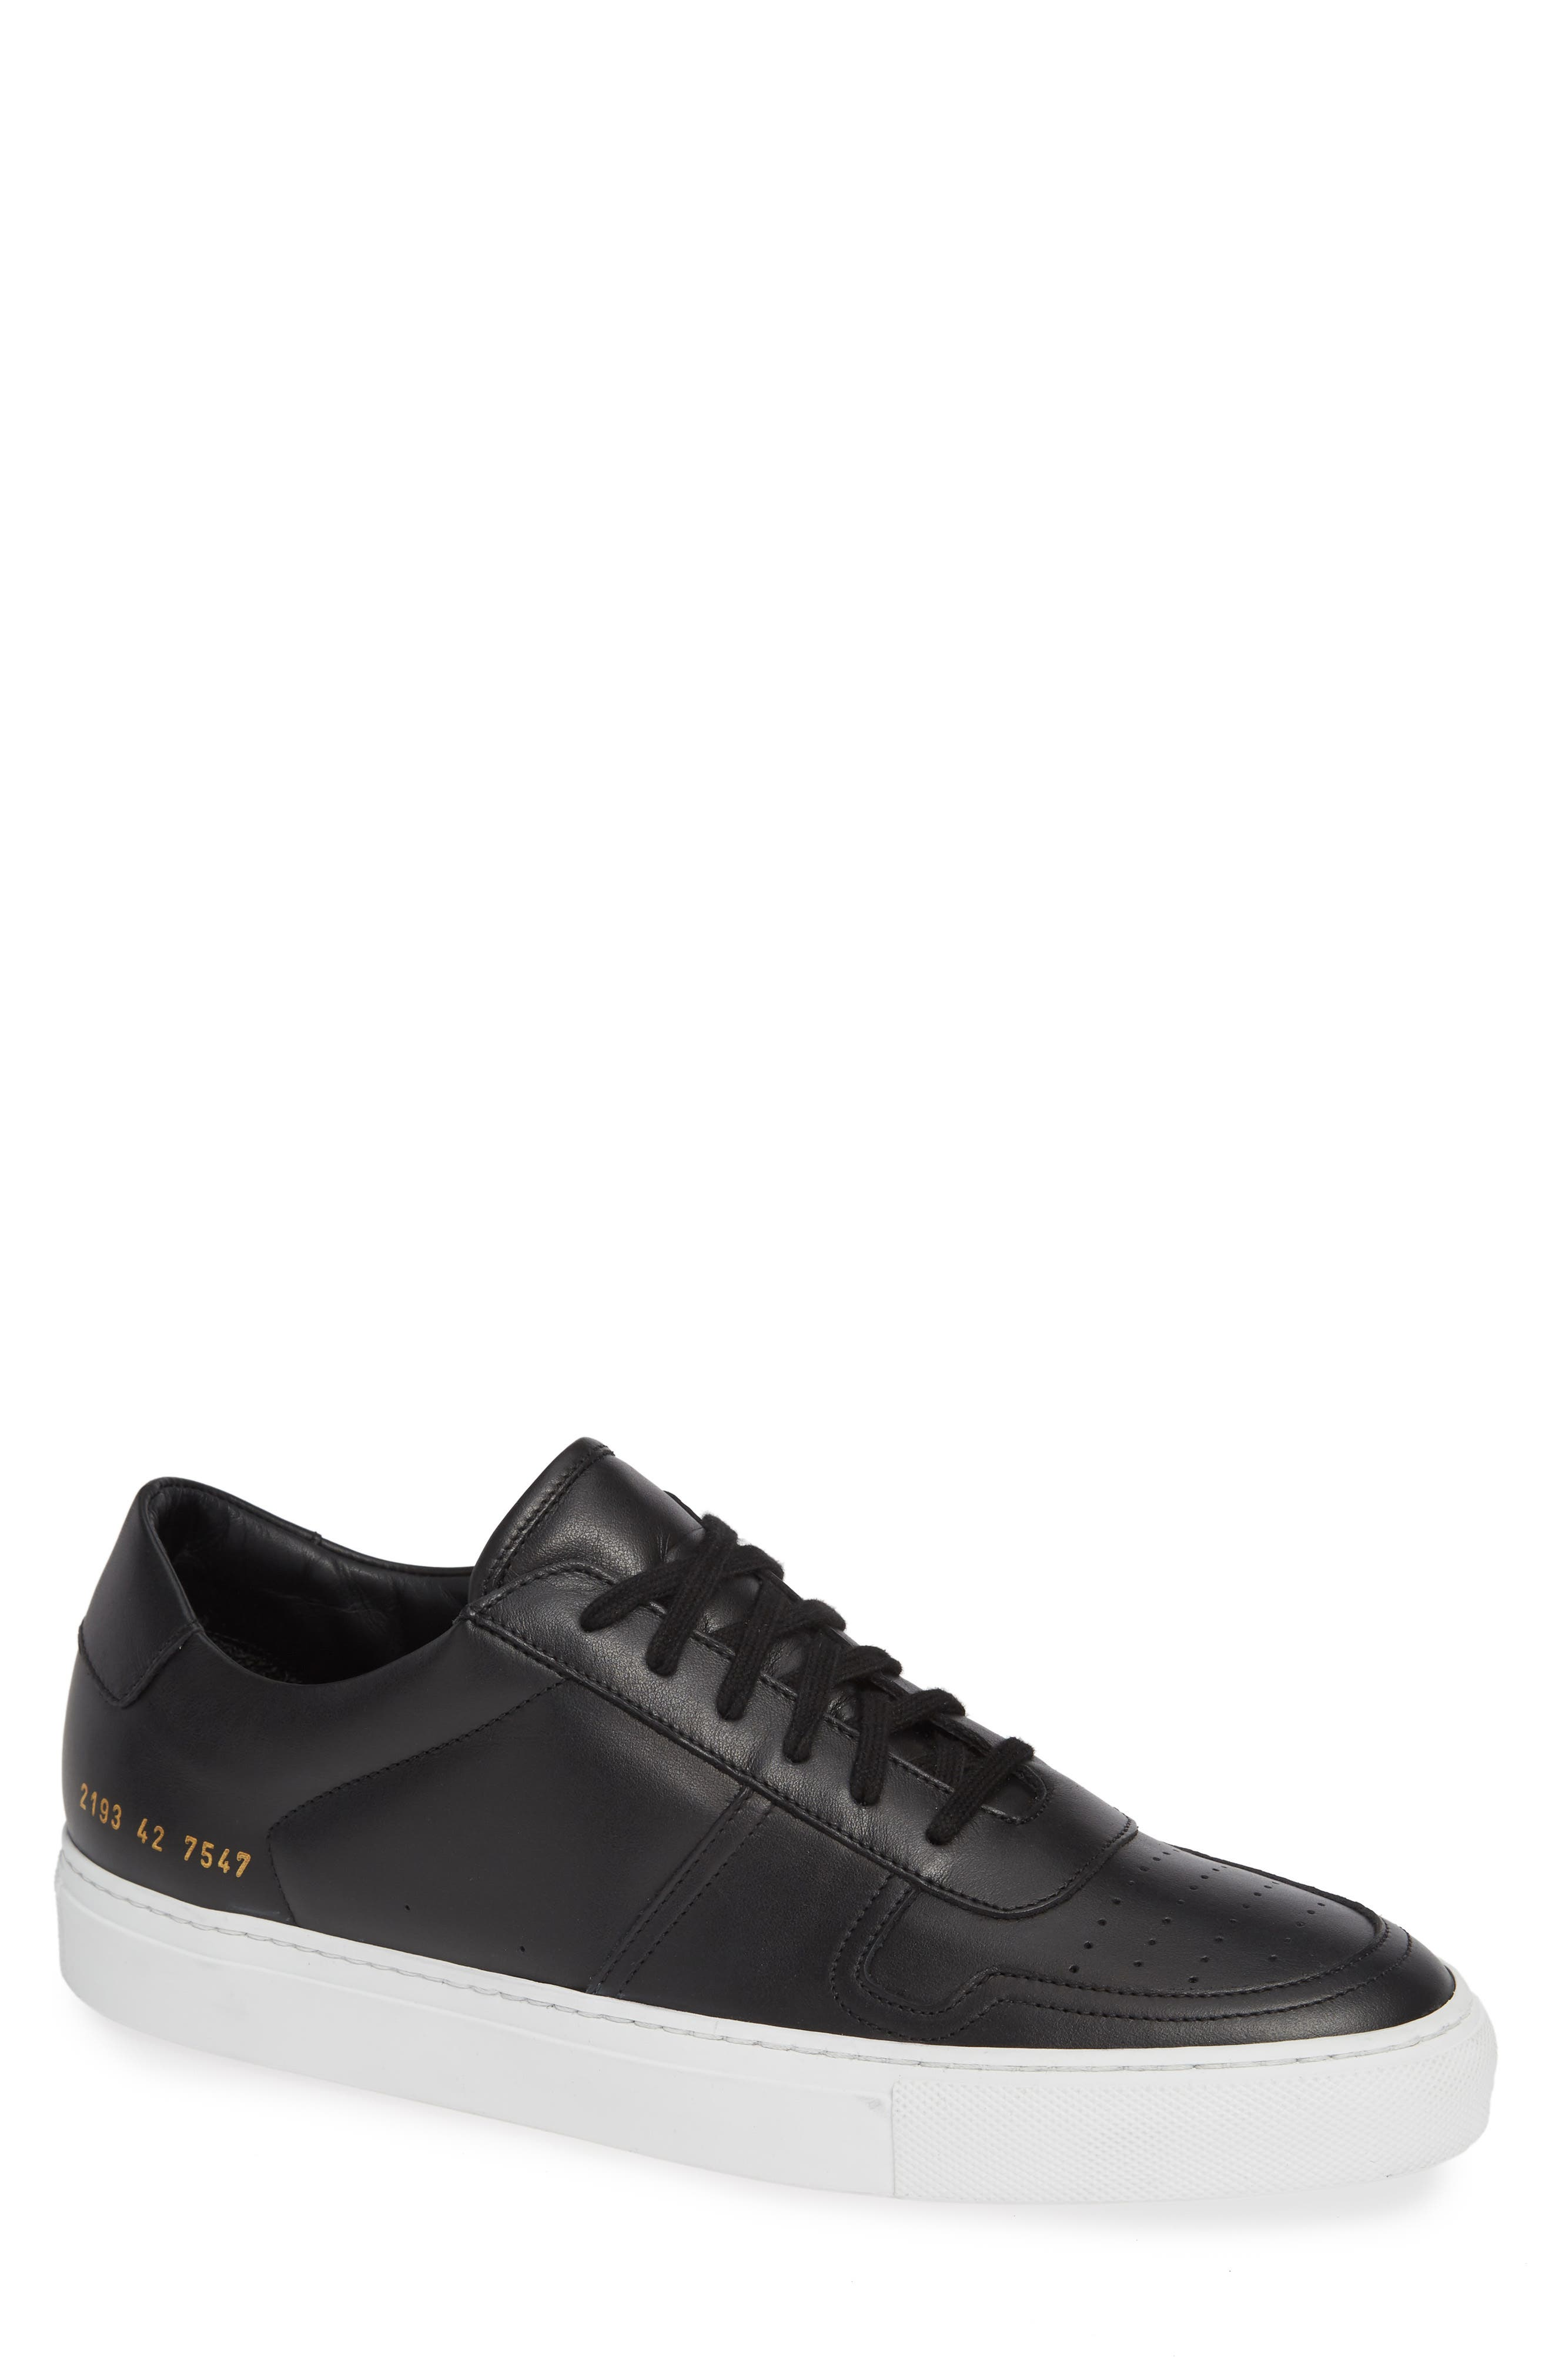 COMMON PROJECTS Bball Low Top Sneaker, Main, color, BLACK